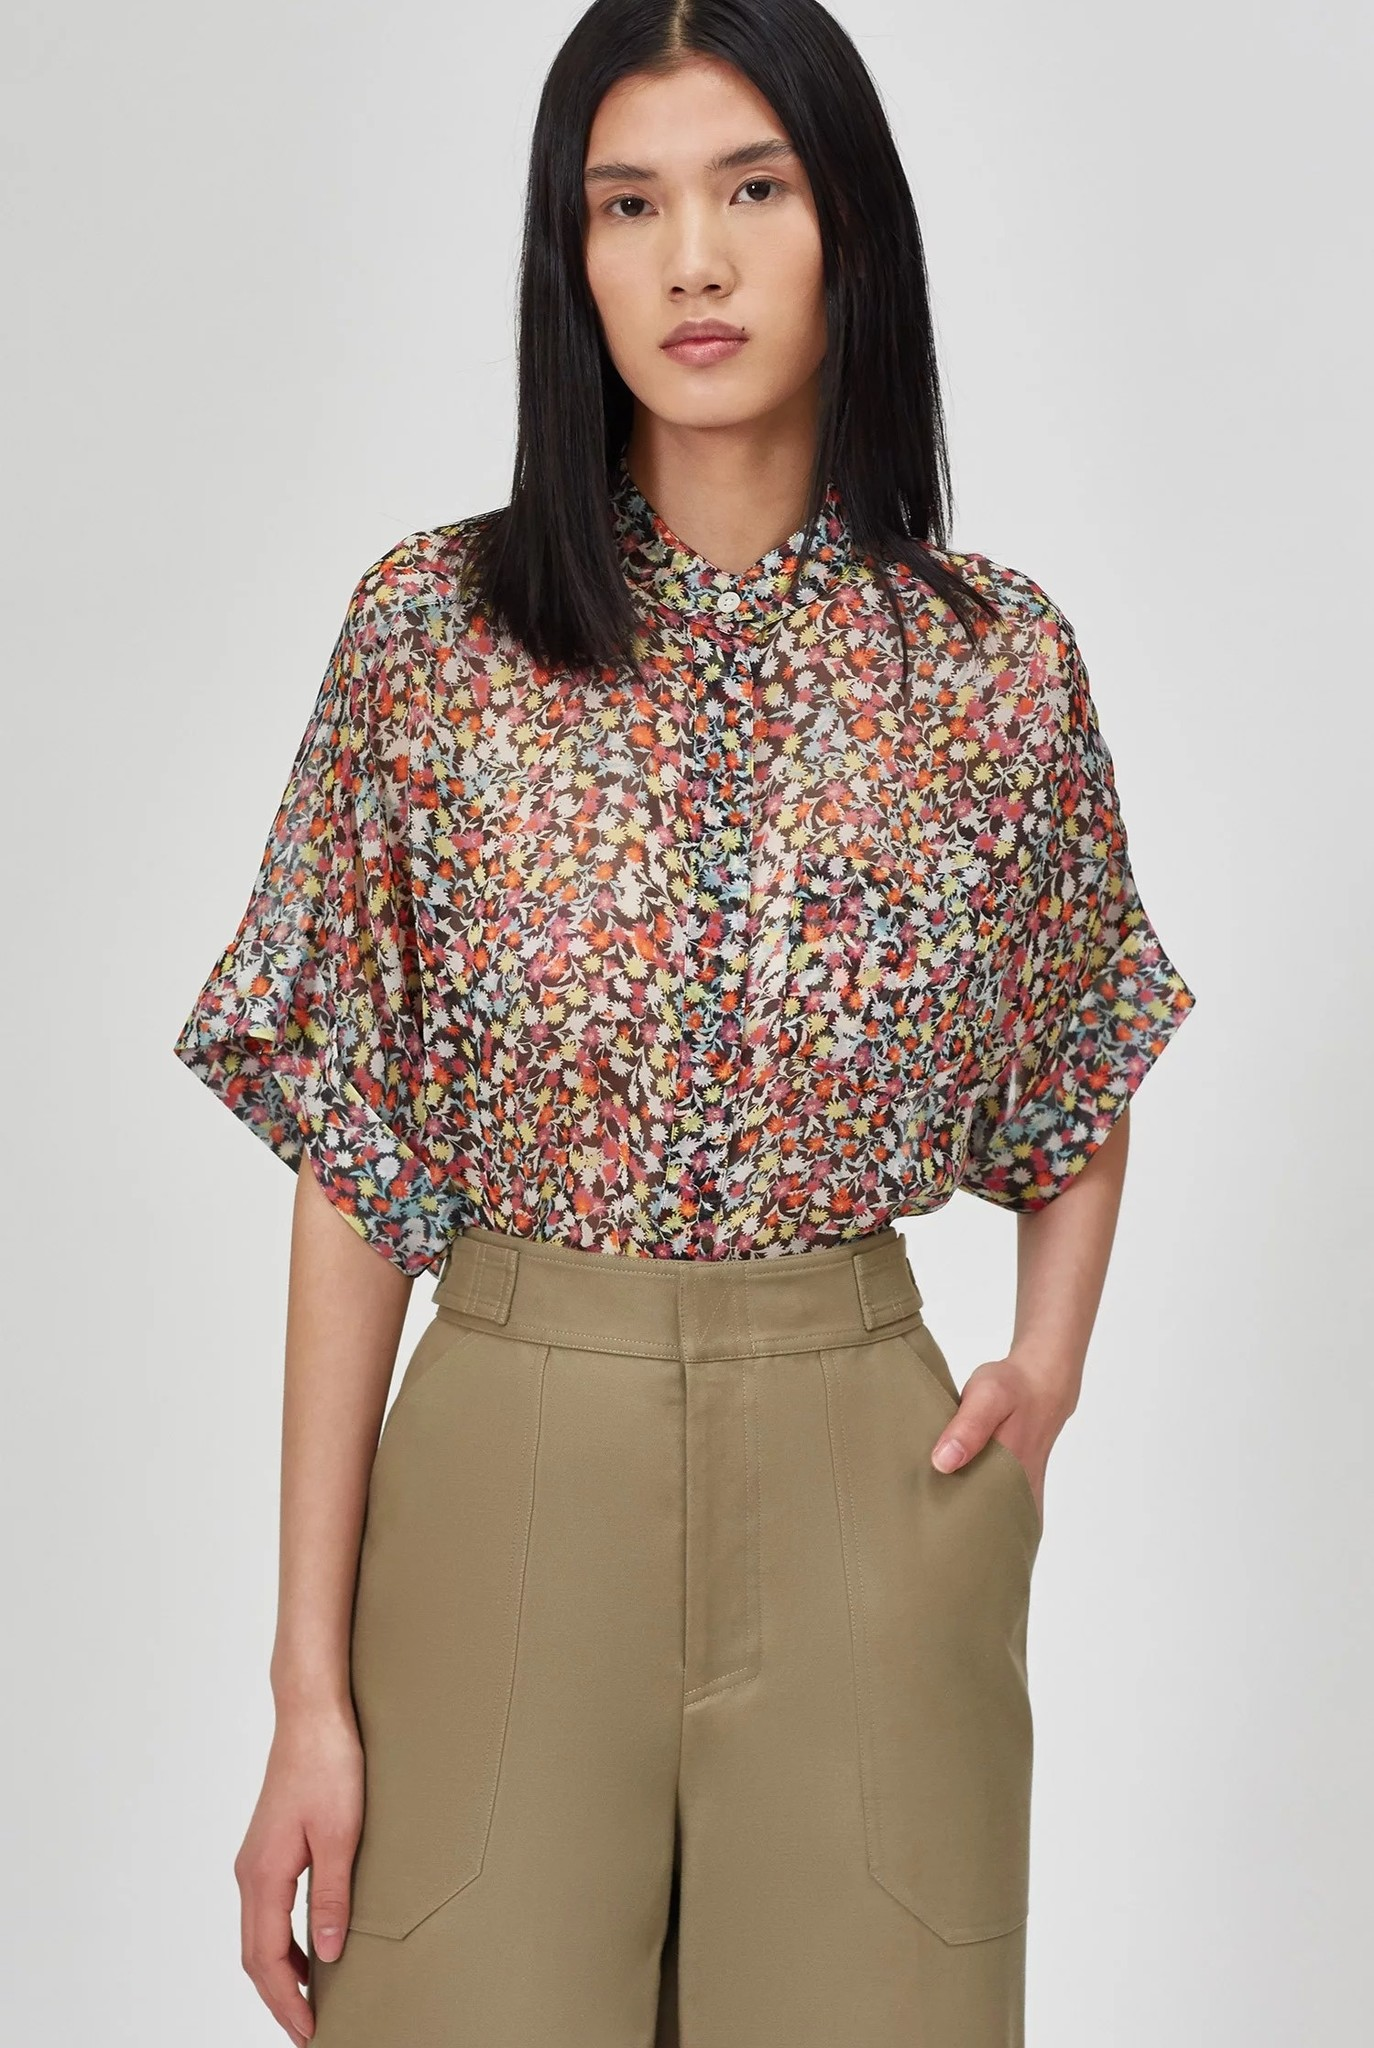 Alvia blouse True Black Multi color